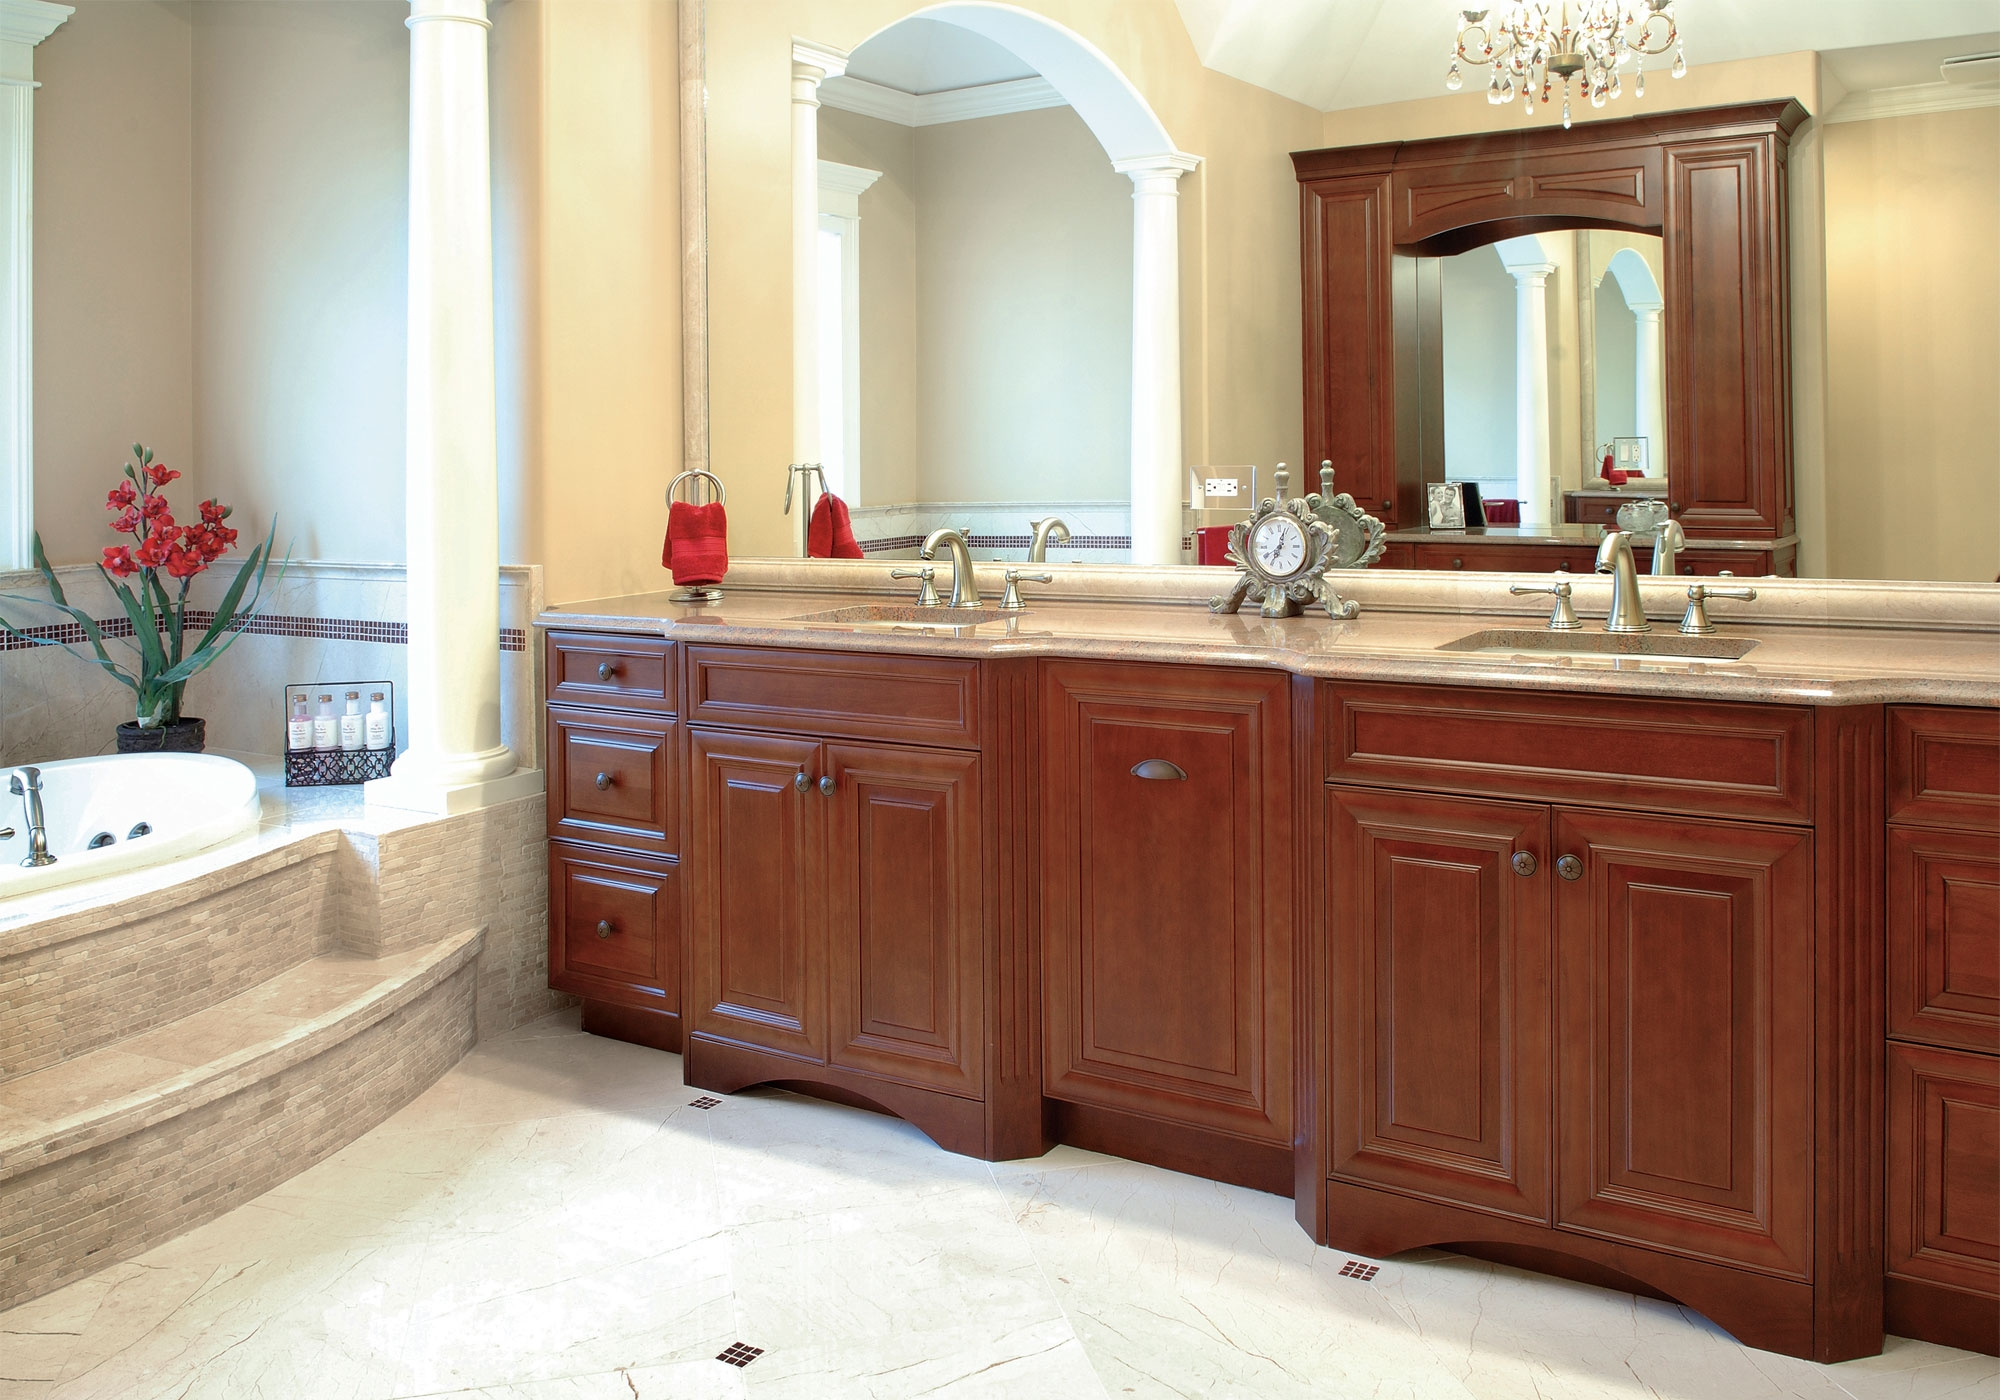 Custom Vanity Cabinets For Bathroomskitchen cabinets bathroom vanity cabinets advanced cabinets